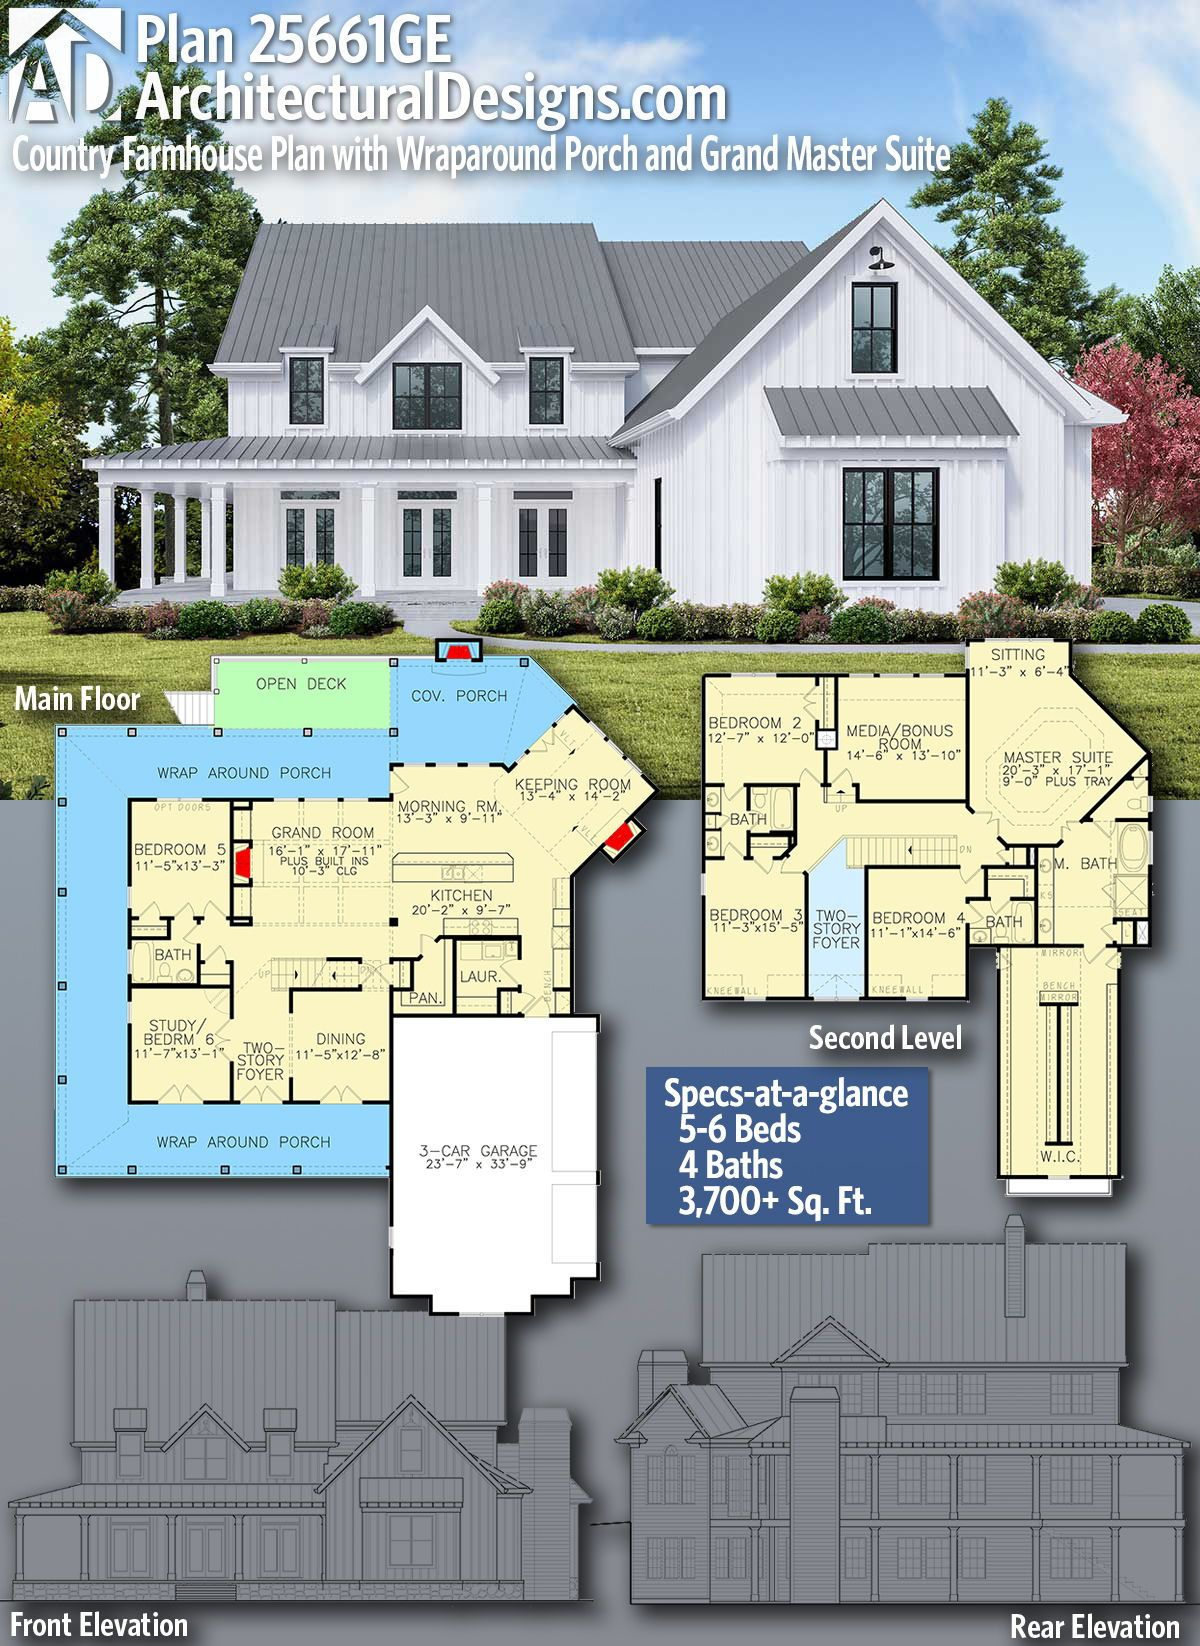 Plan 25661ge Country Farmhouse Plan With Wraparound Porch And Grand Master Suite Farmhouse Plans 6 Bedroom House Plans Country House Plans